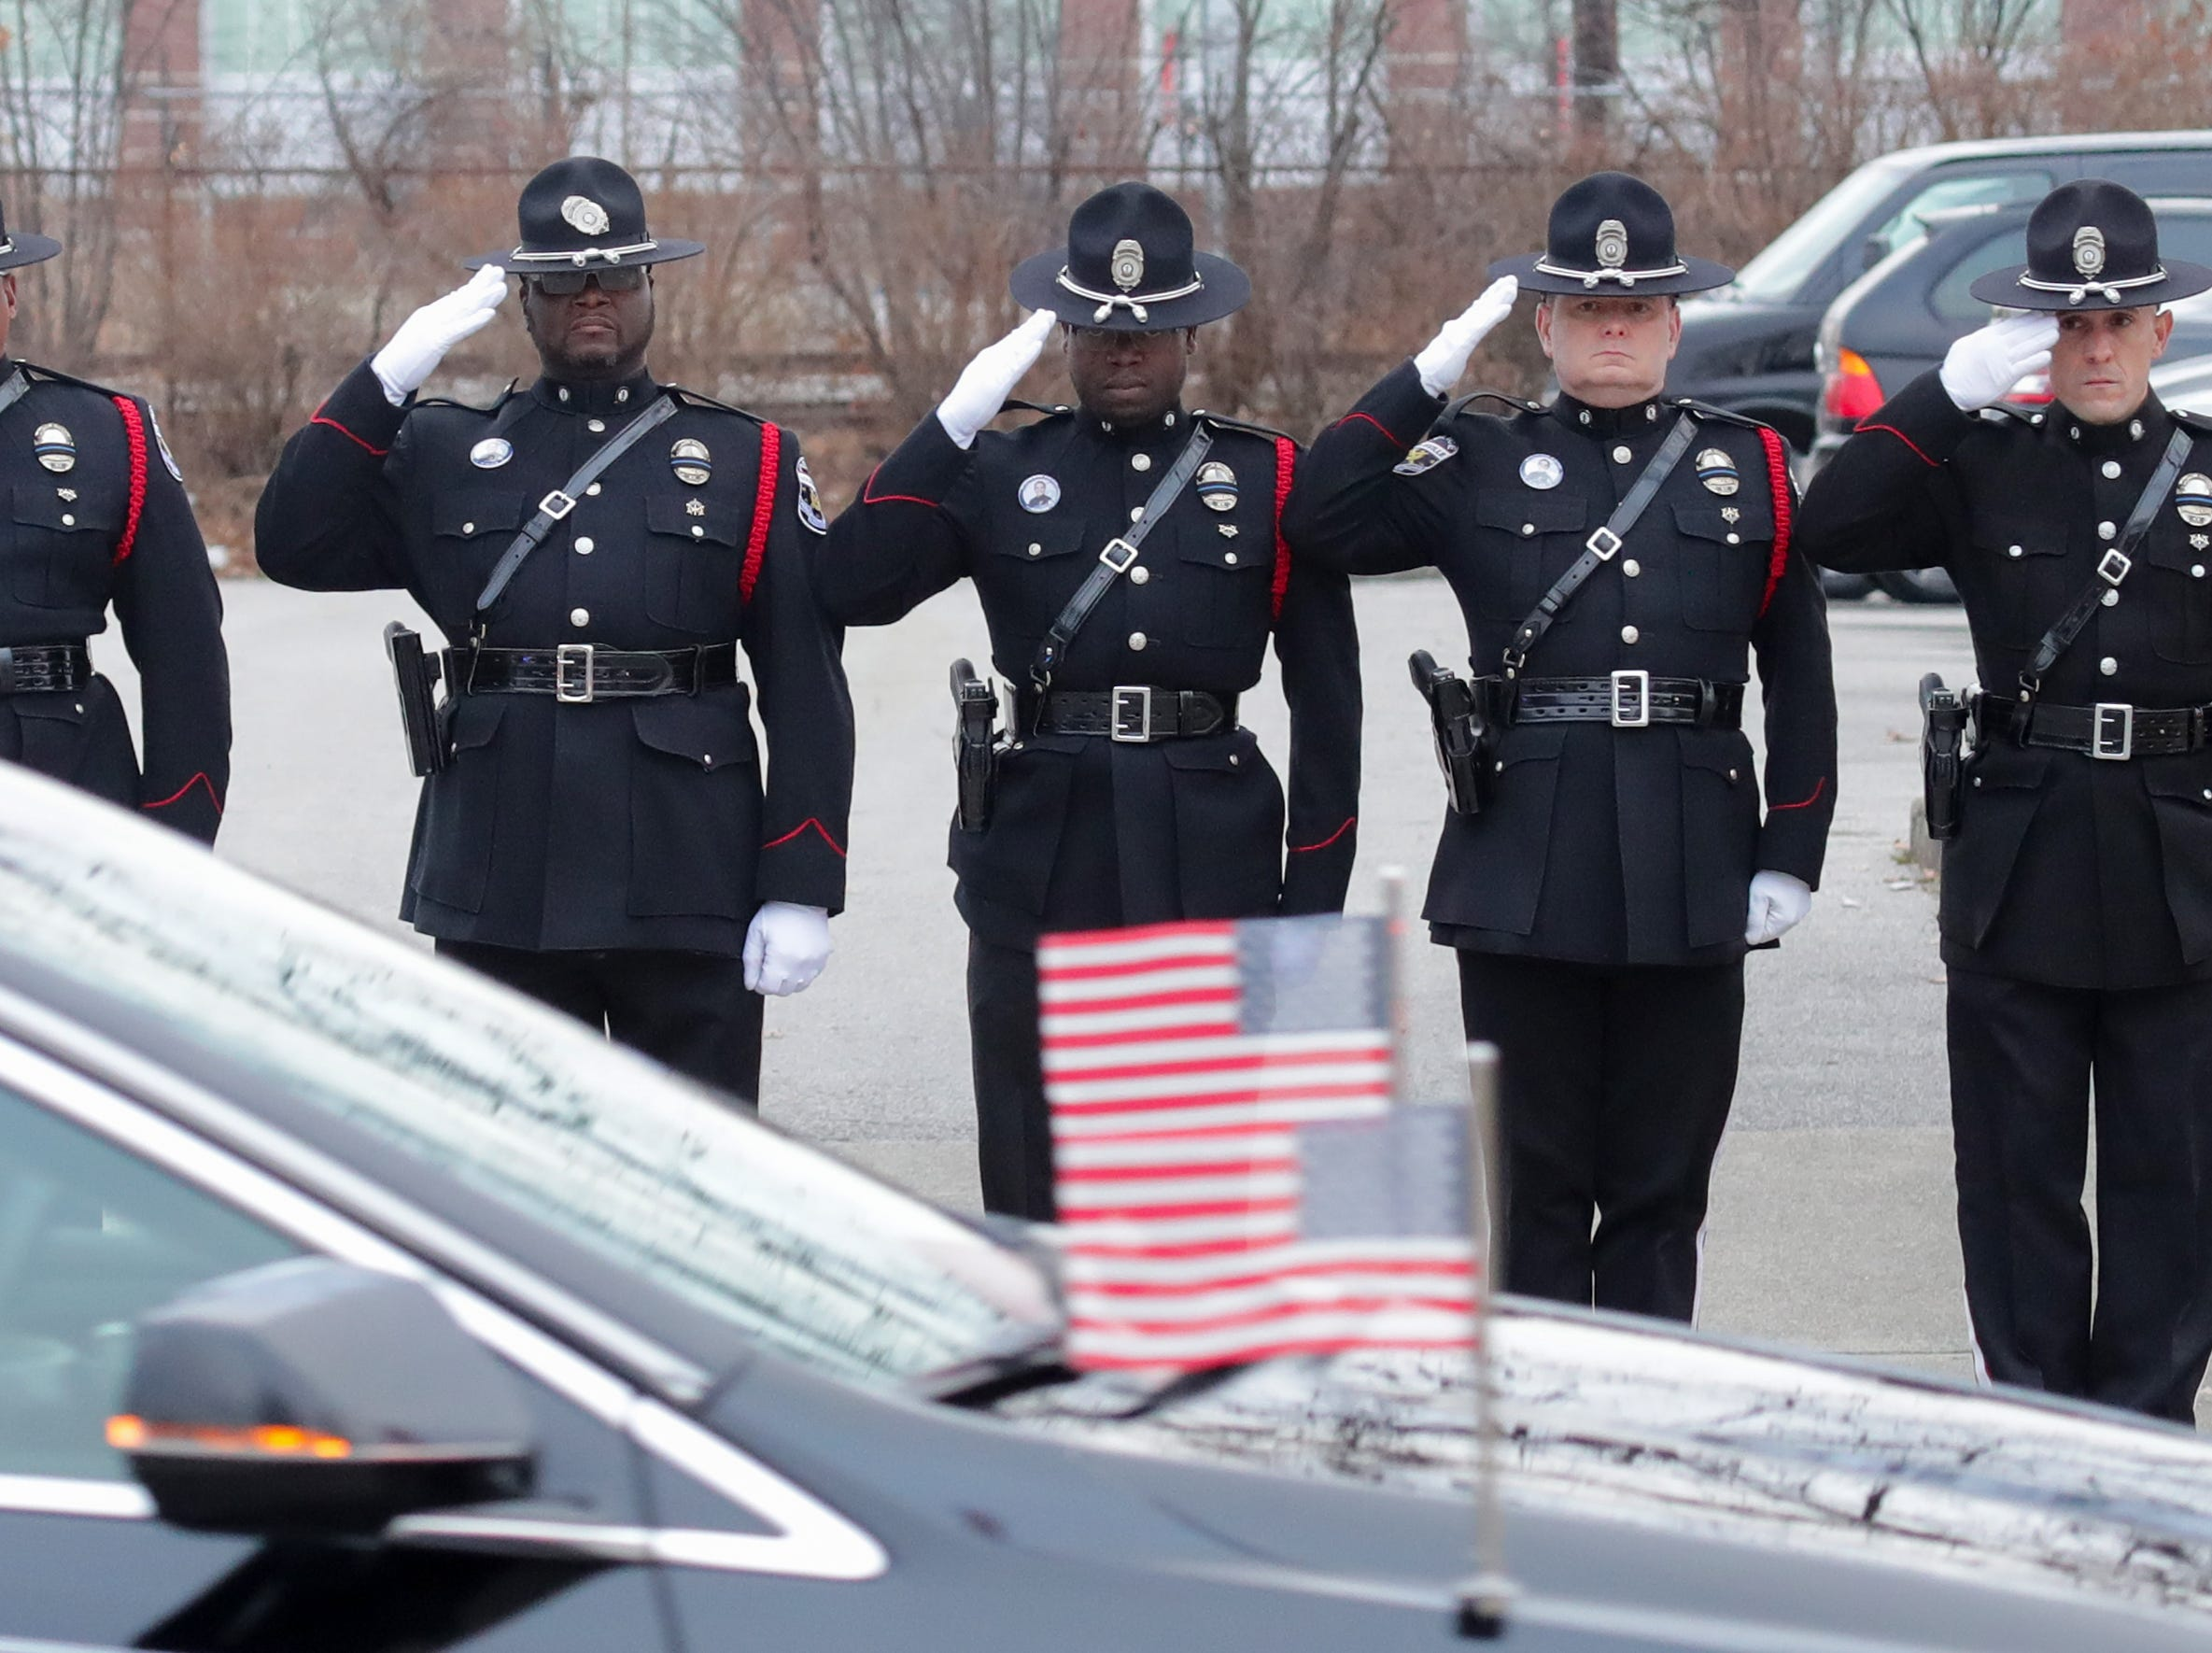 Louisville Metro Police salute as procession leaves the O.D. White Funeral home.